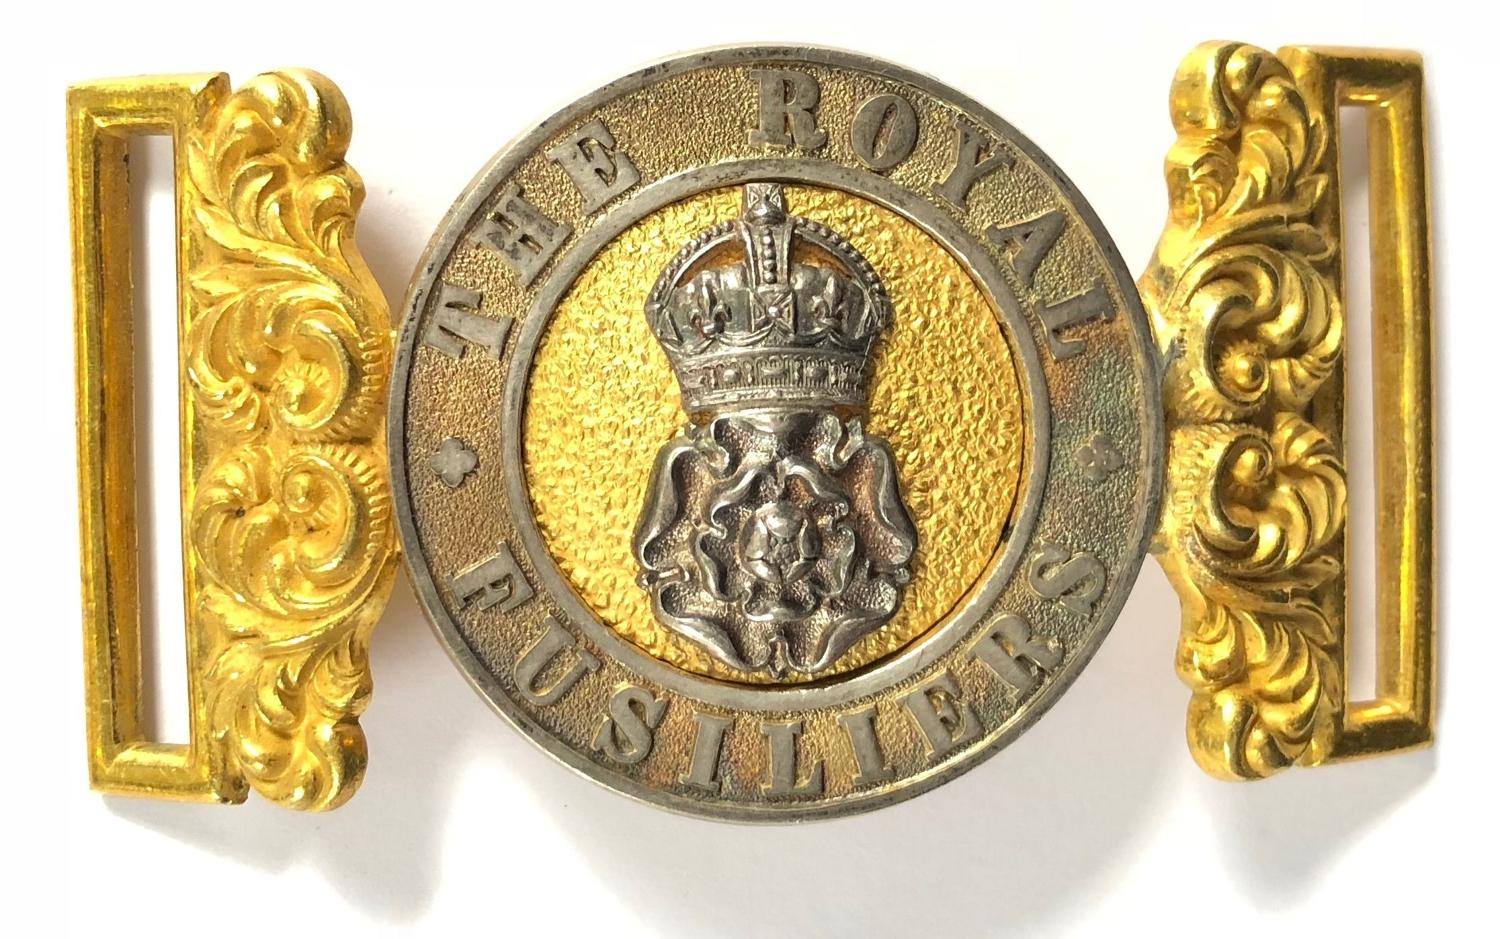 Royal Fusiliers Edwardian Officer's waist belt clasp 1901/02 only